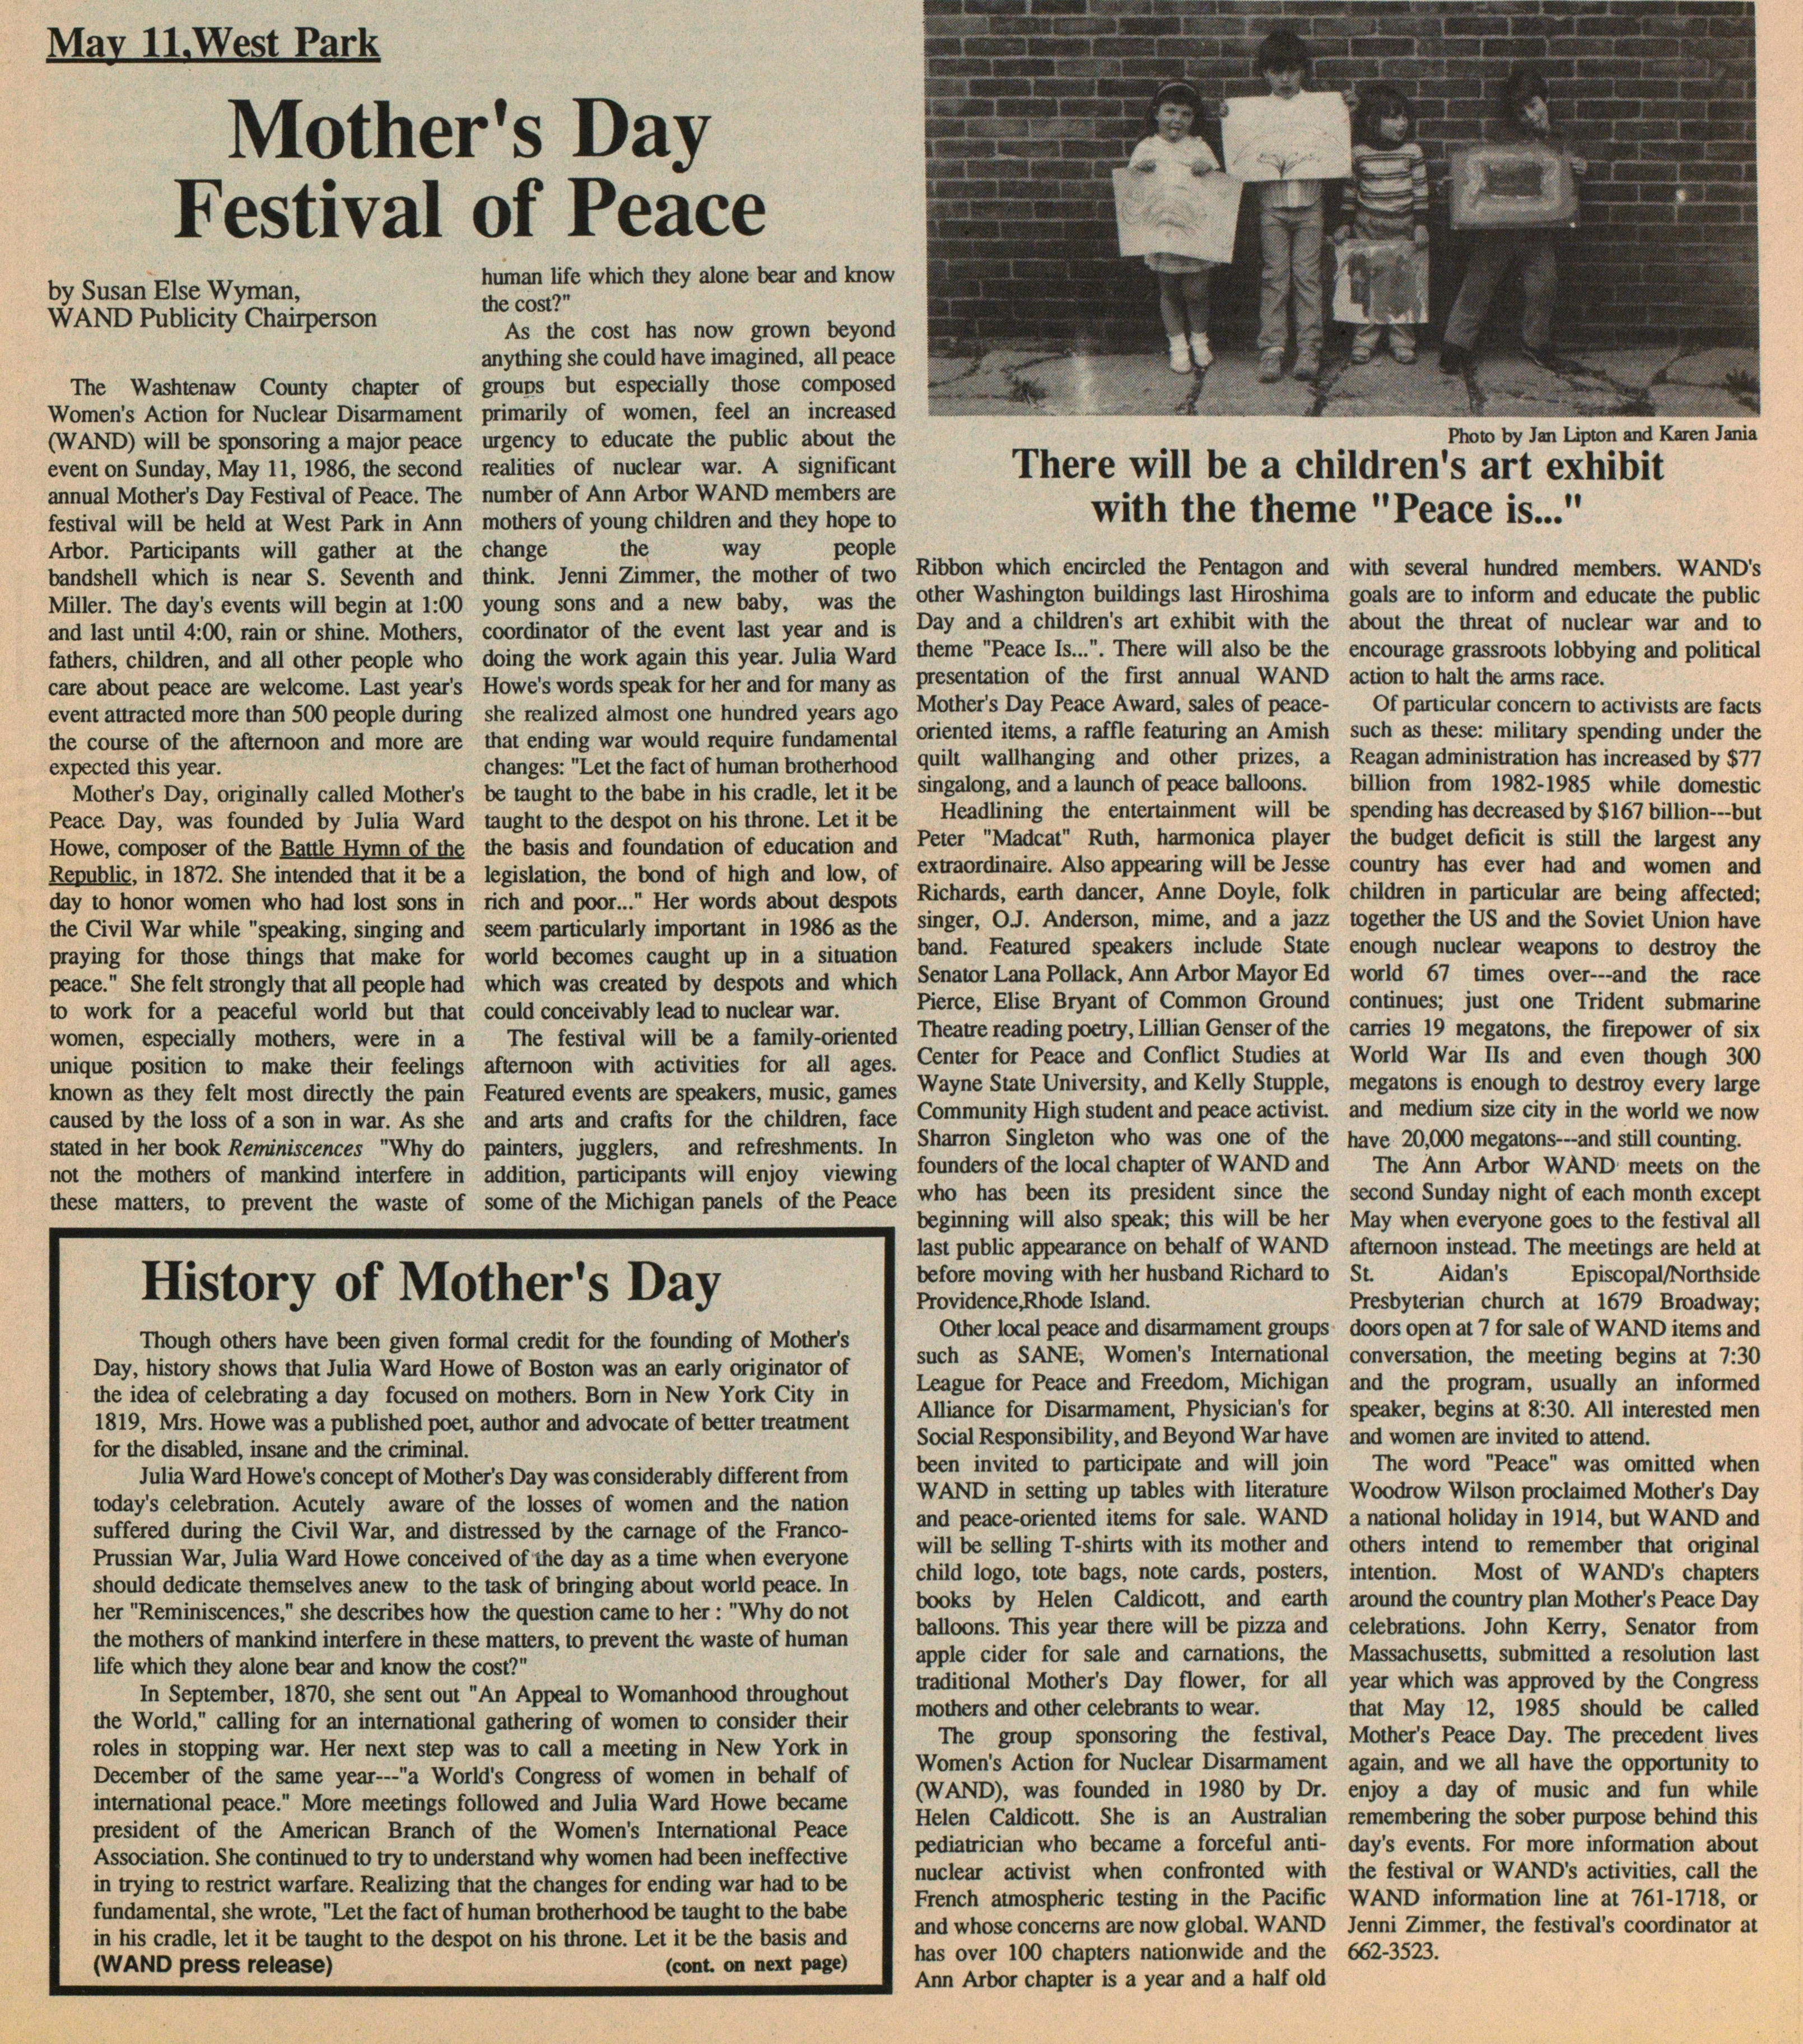 Mothers Day Festival Of Peace image